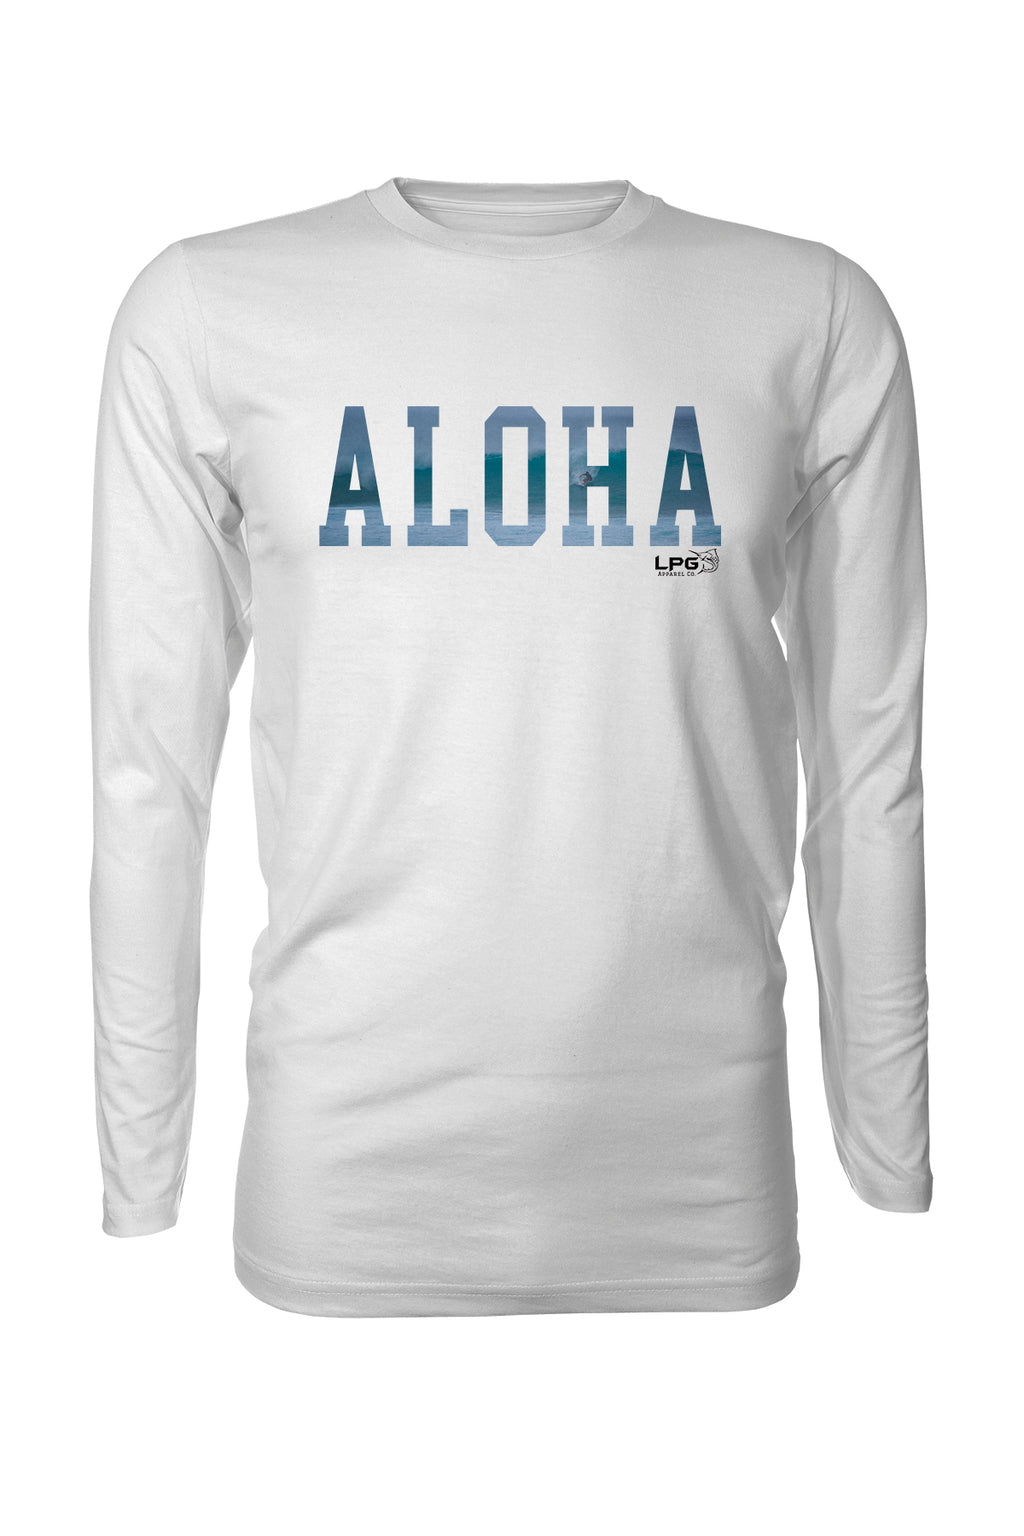 LPG Apparel Co. ALOHA Pipeline Surfer  Rashguard LS Performance UPF 50 Unisex T-Shirt - Lobo Performance Gear